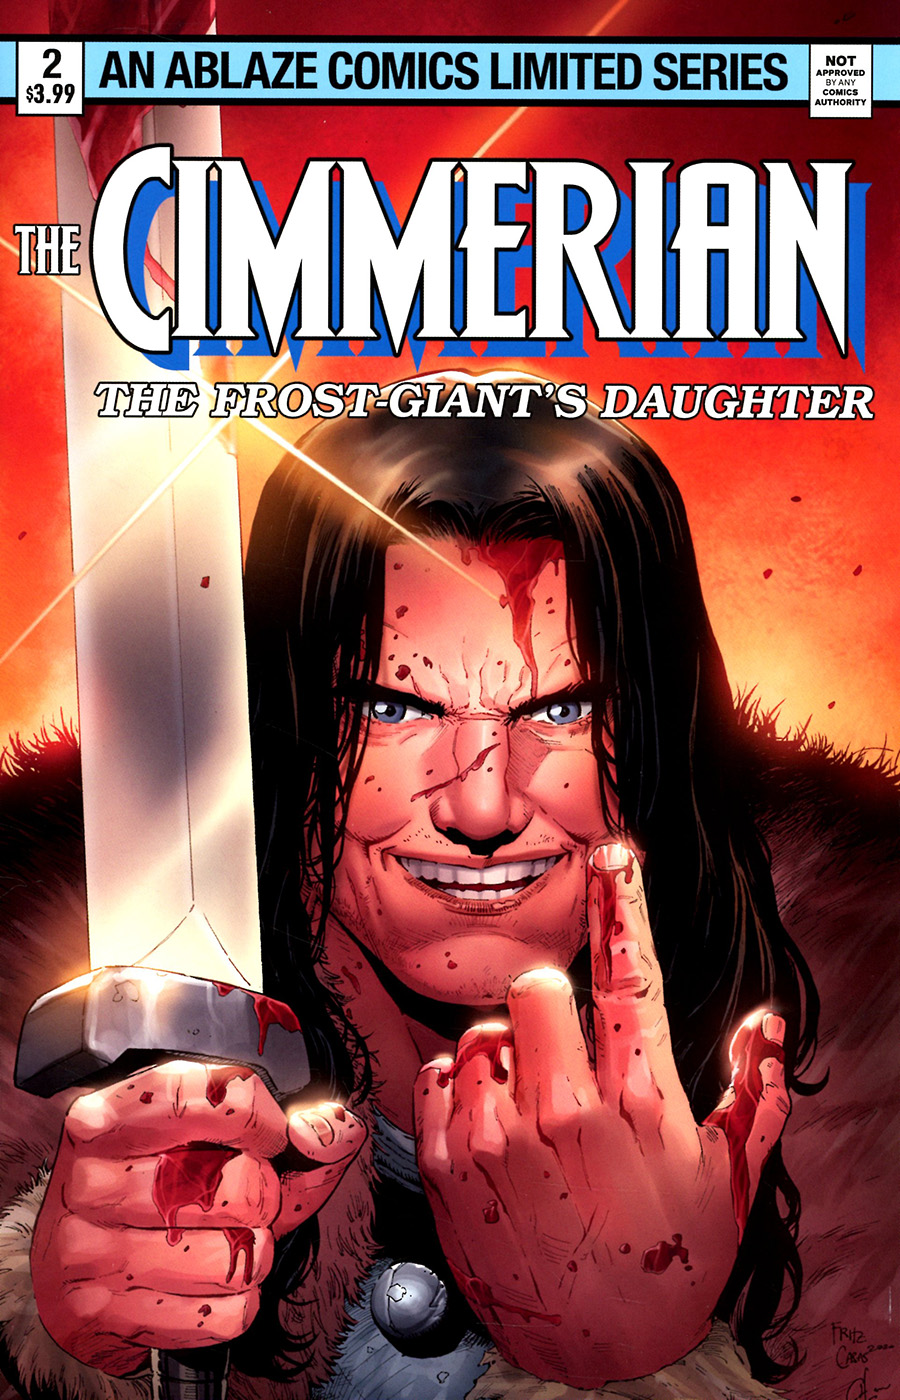 Cimmerian Frost-Giants Daughter #2 Cover D Variant Fritz Casas Wolverine Limited Series Parody Cover